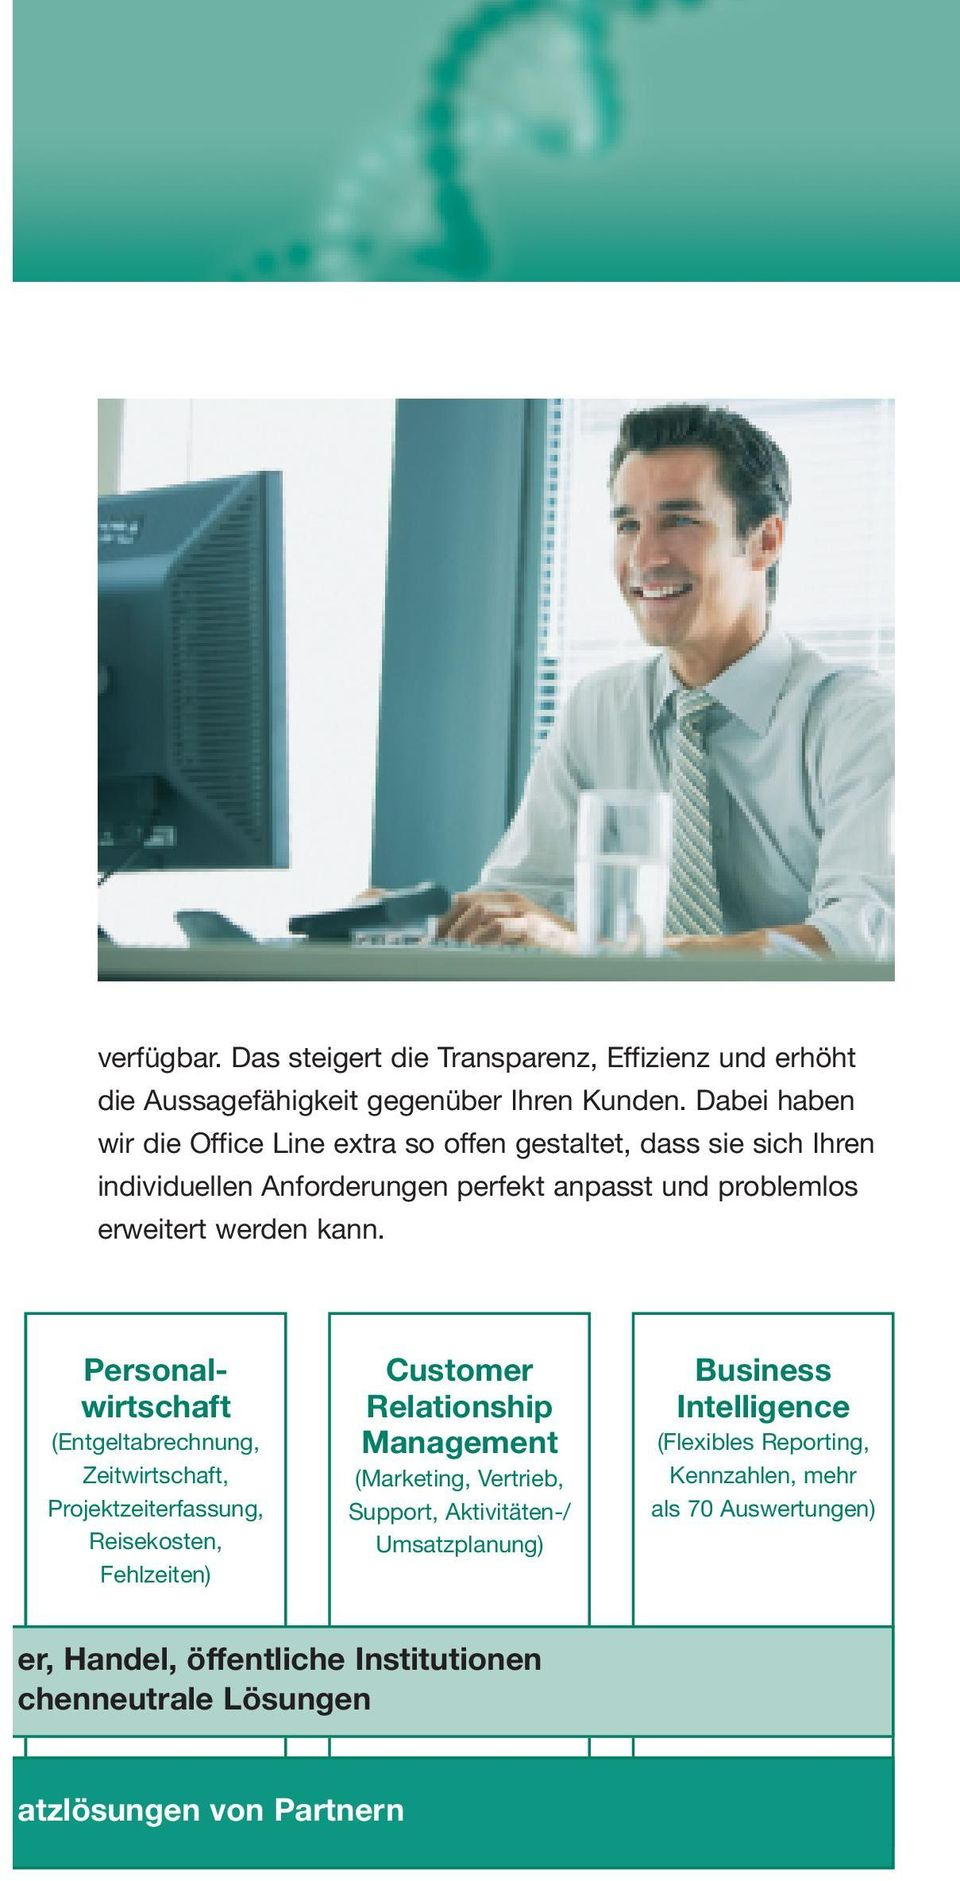 kann. Personalwirtschaft (Entgeltabrechnung, Zeitwirtschaft, Projektzeiterfassung, Reisekosten, Fehlzeiten) Customer Relationship Management (Marketing,